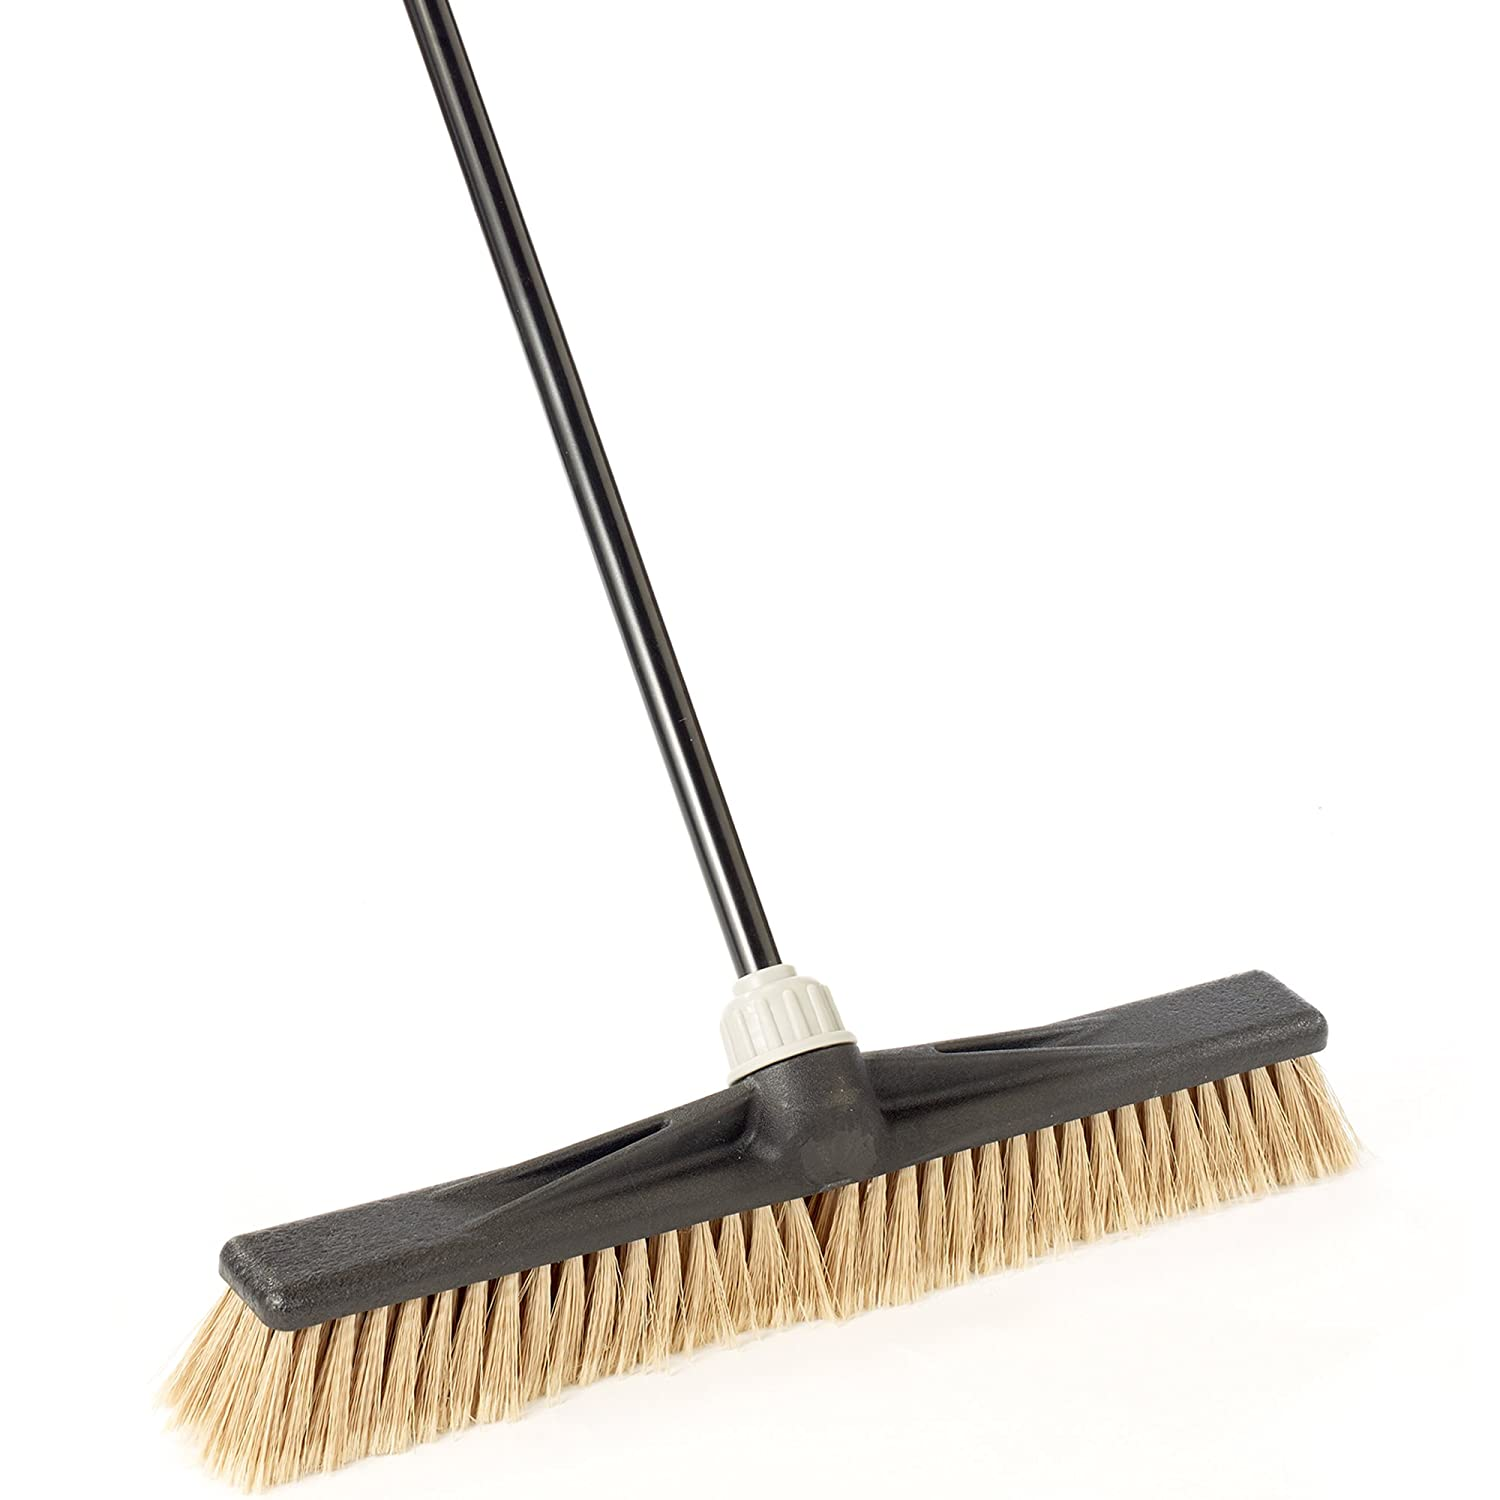 O-Cedar Professional 24 Smooth Surface Push Broom by O-Cedar